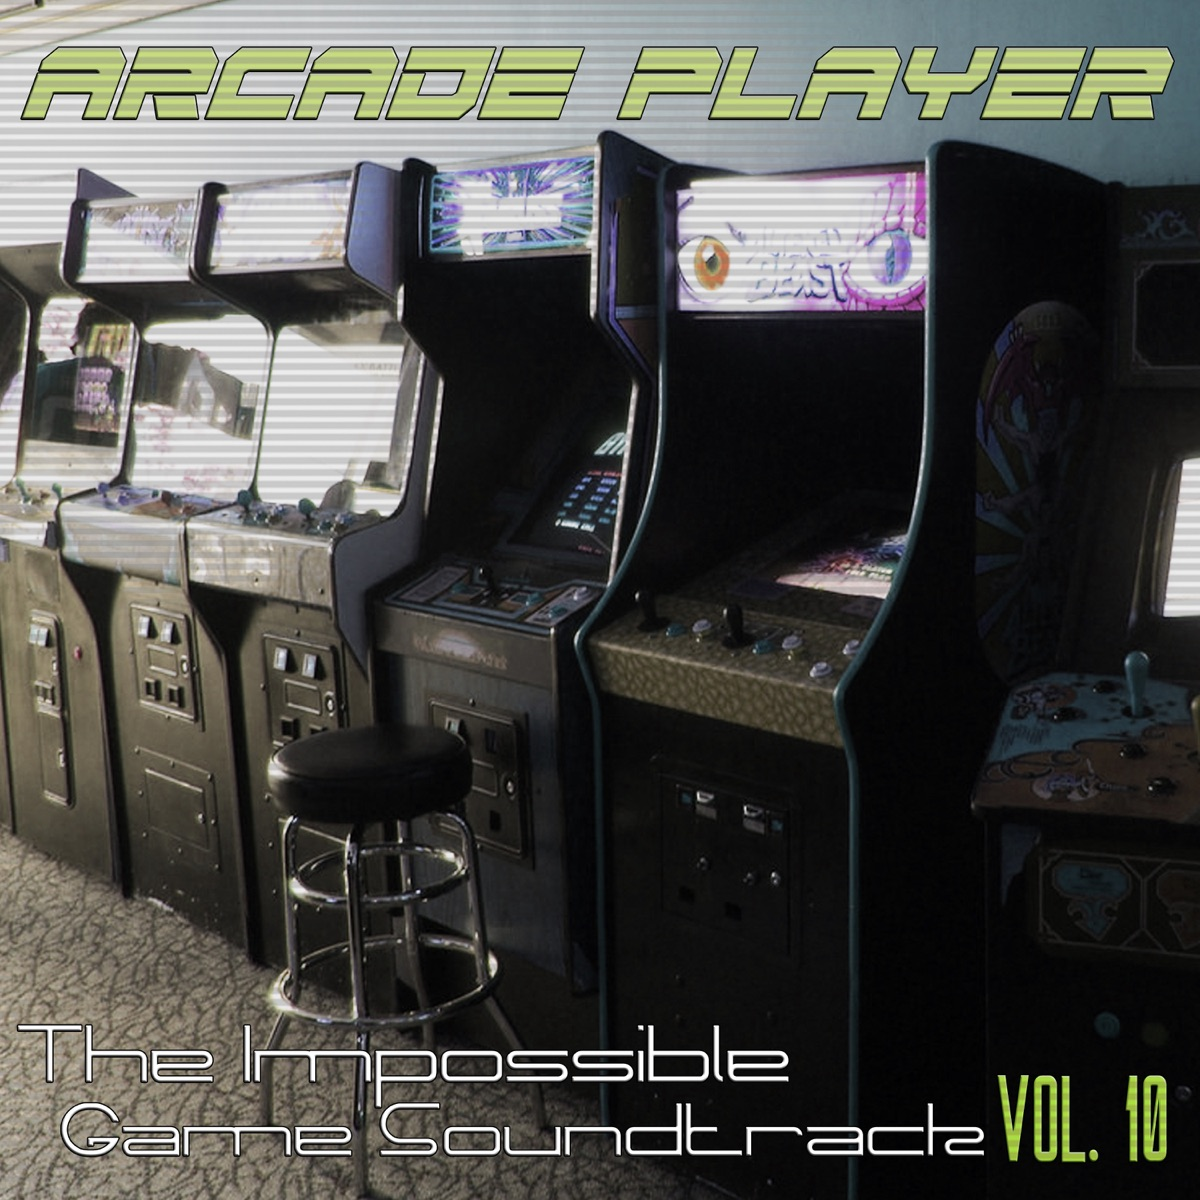 The Impossible Game Soundtrack Vol 10 Arcade Player CD cover